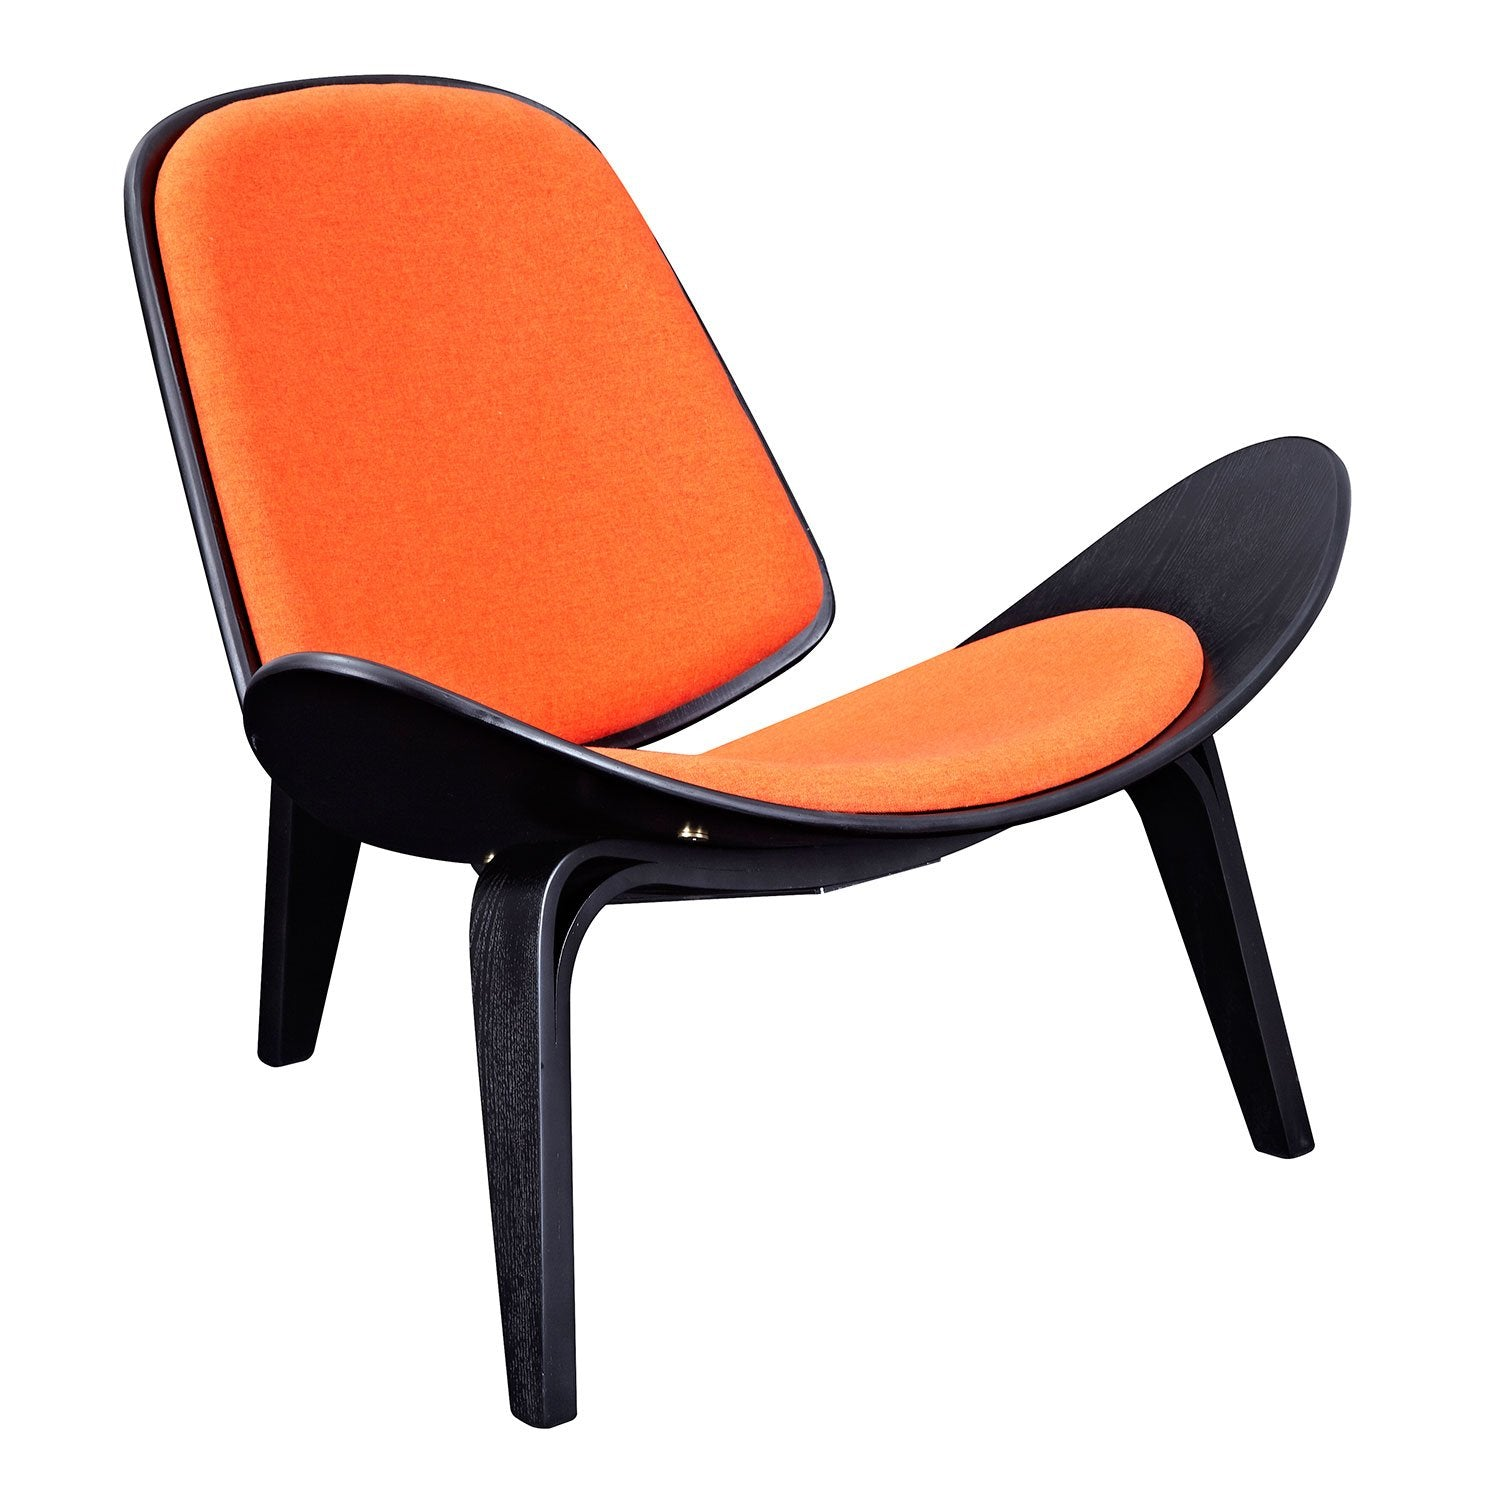 shell chair with retro orange fabric and black finish wood frame accent chairs alan - Wood Frame Accent Chairs